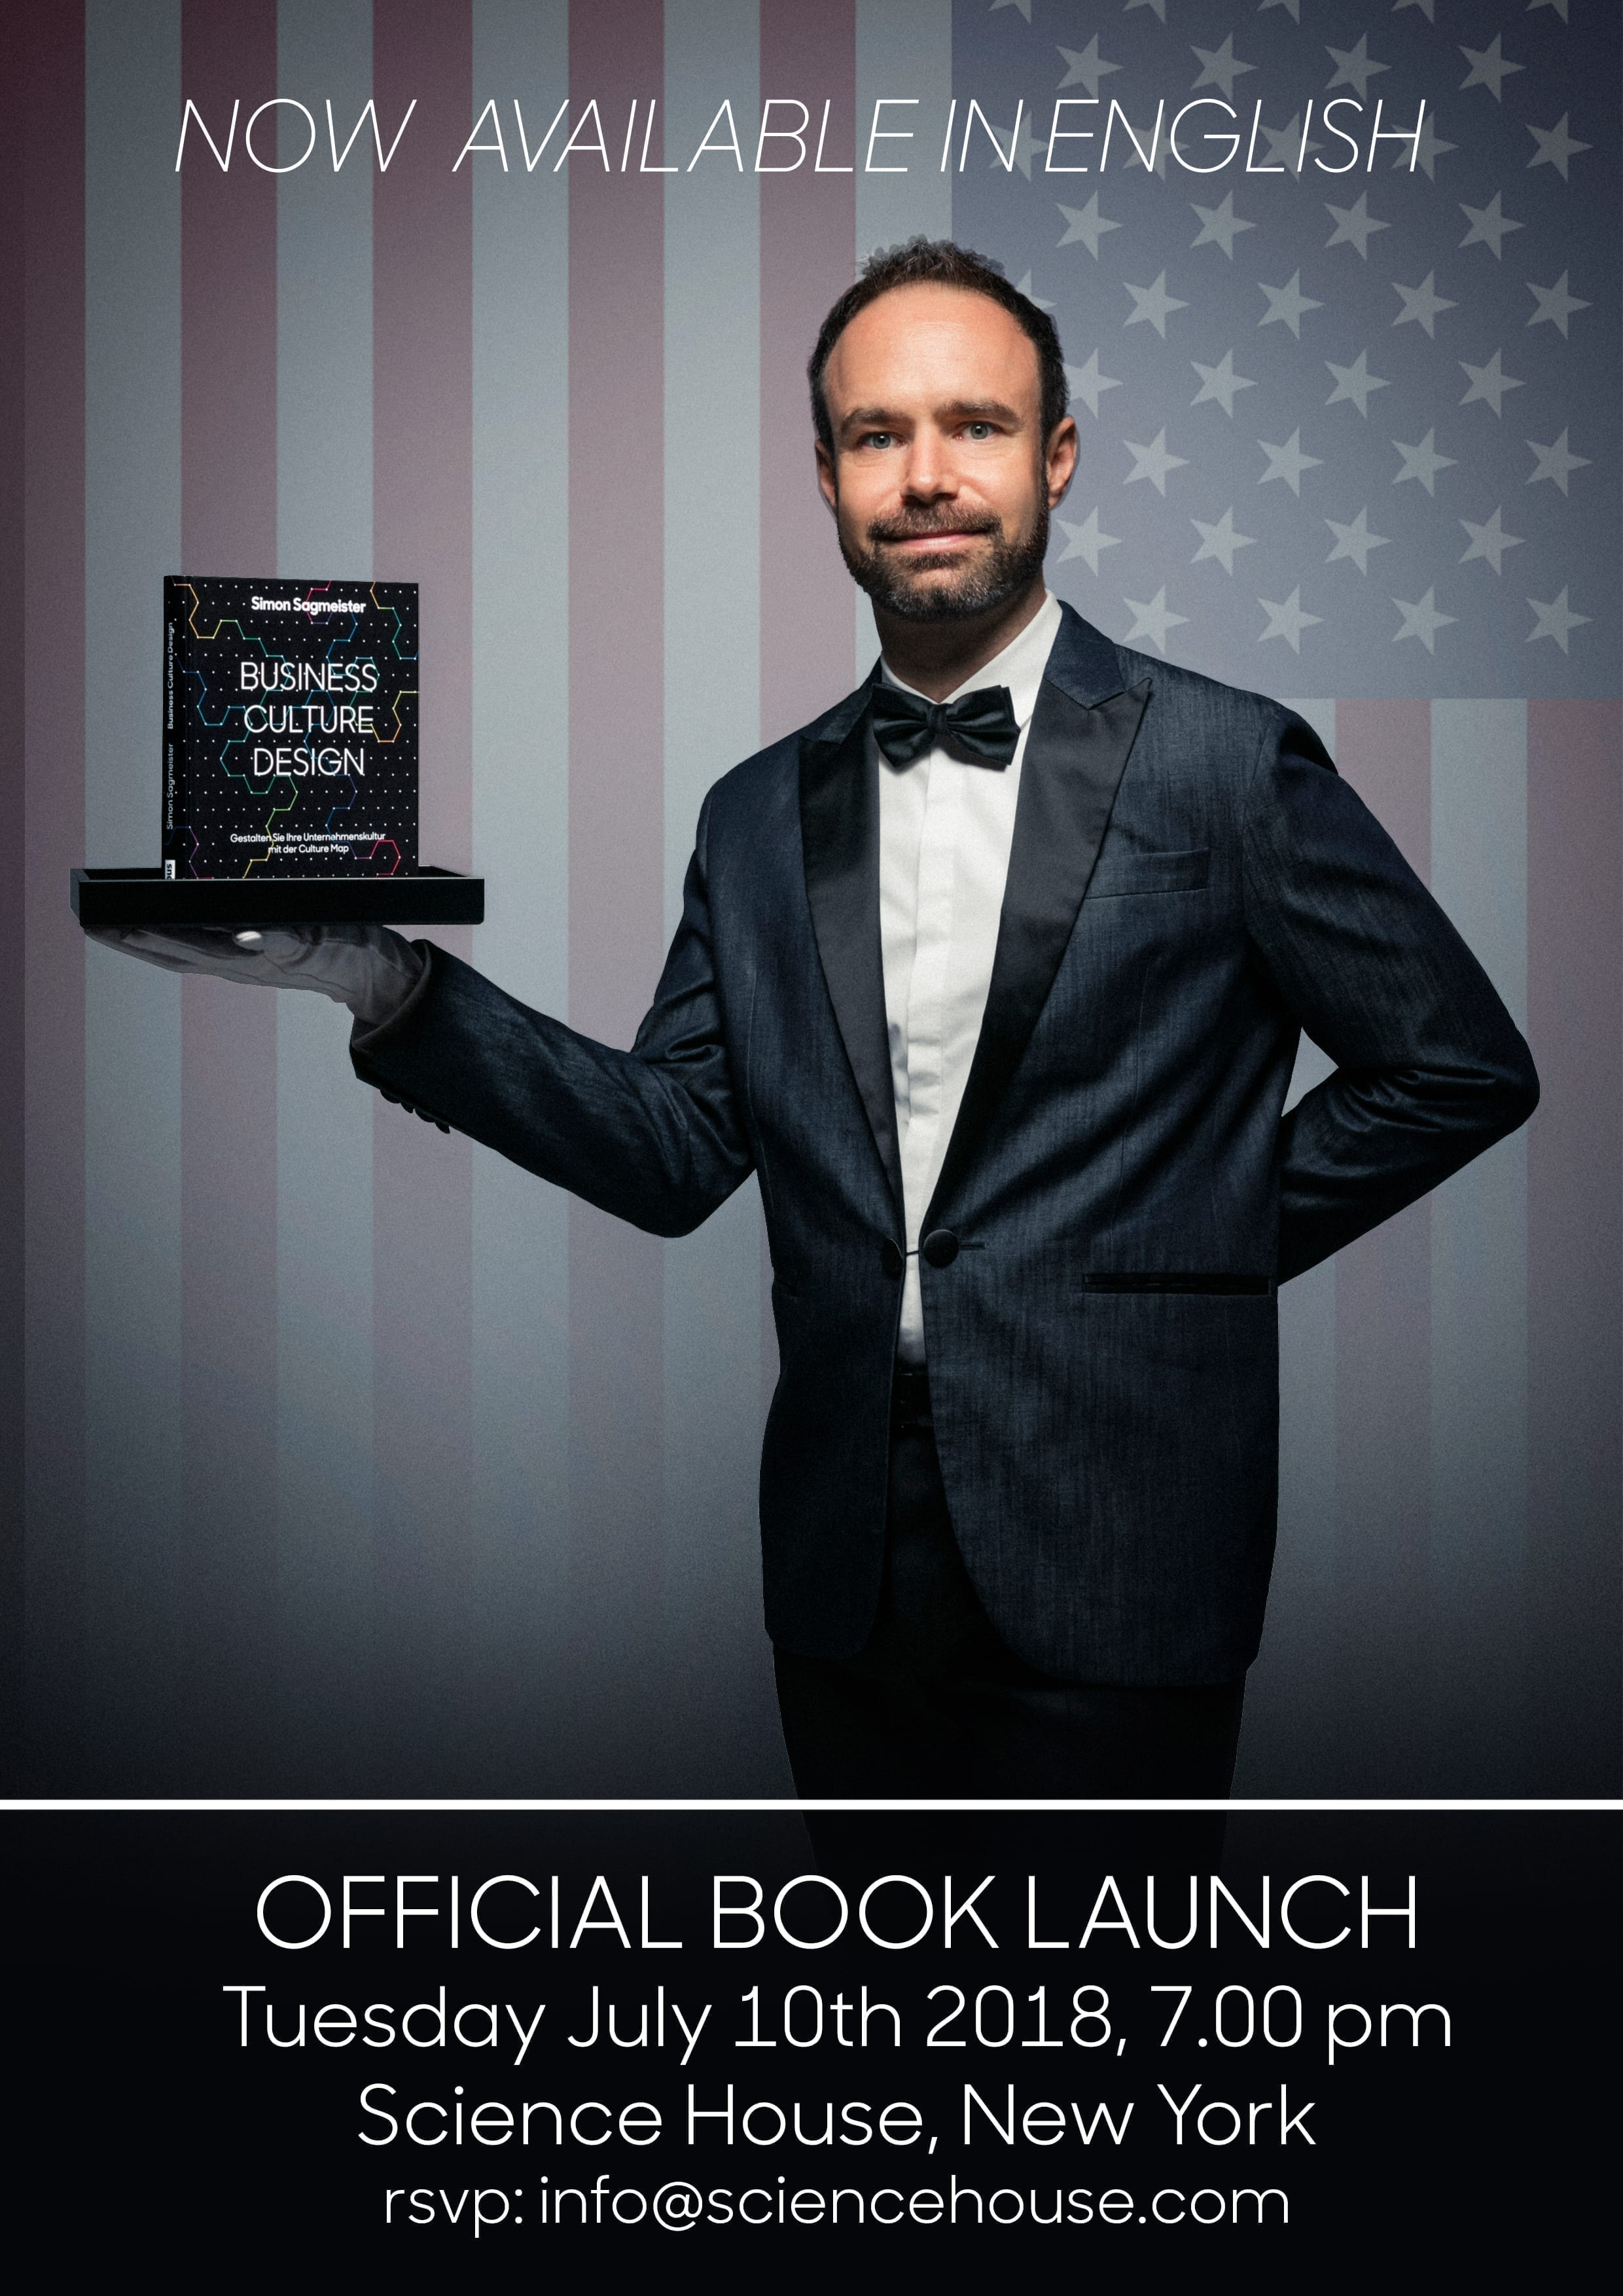 Book Launch - now available in english - Simon Sagmeister